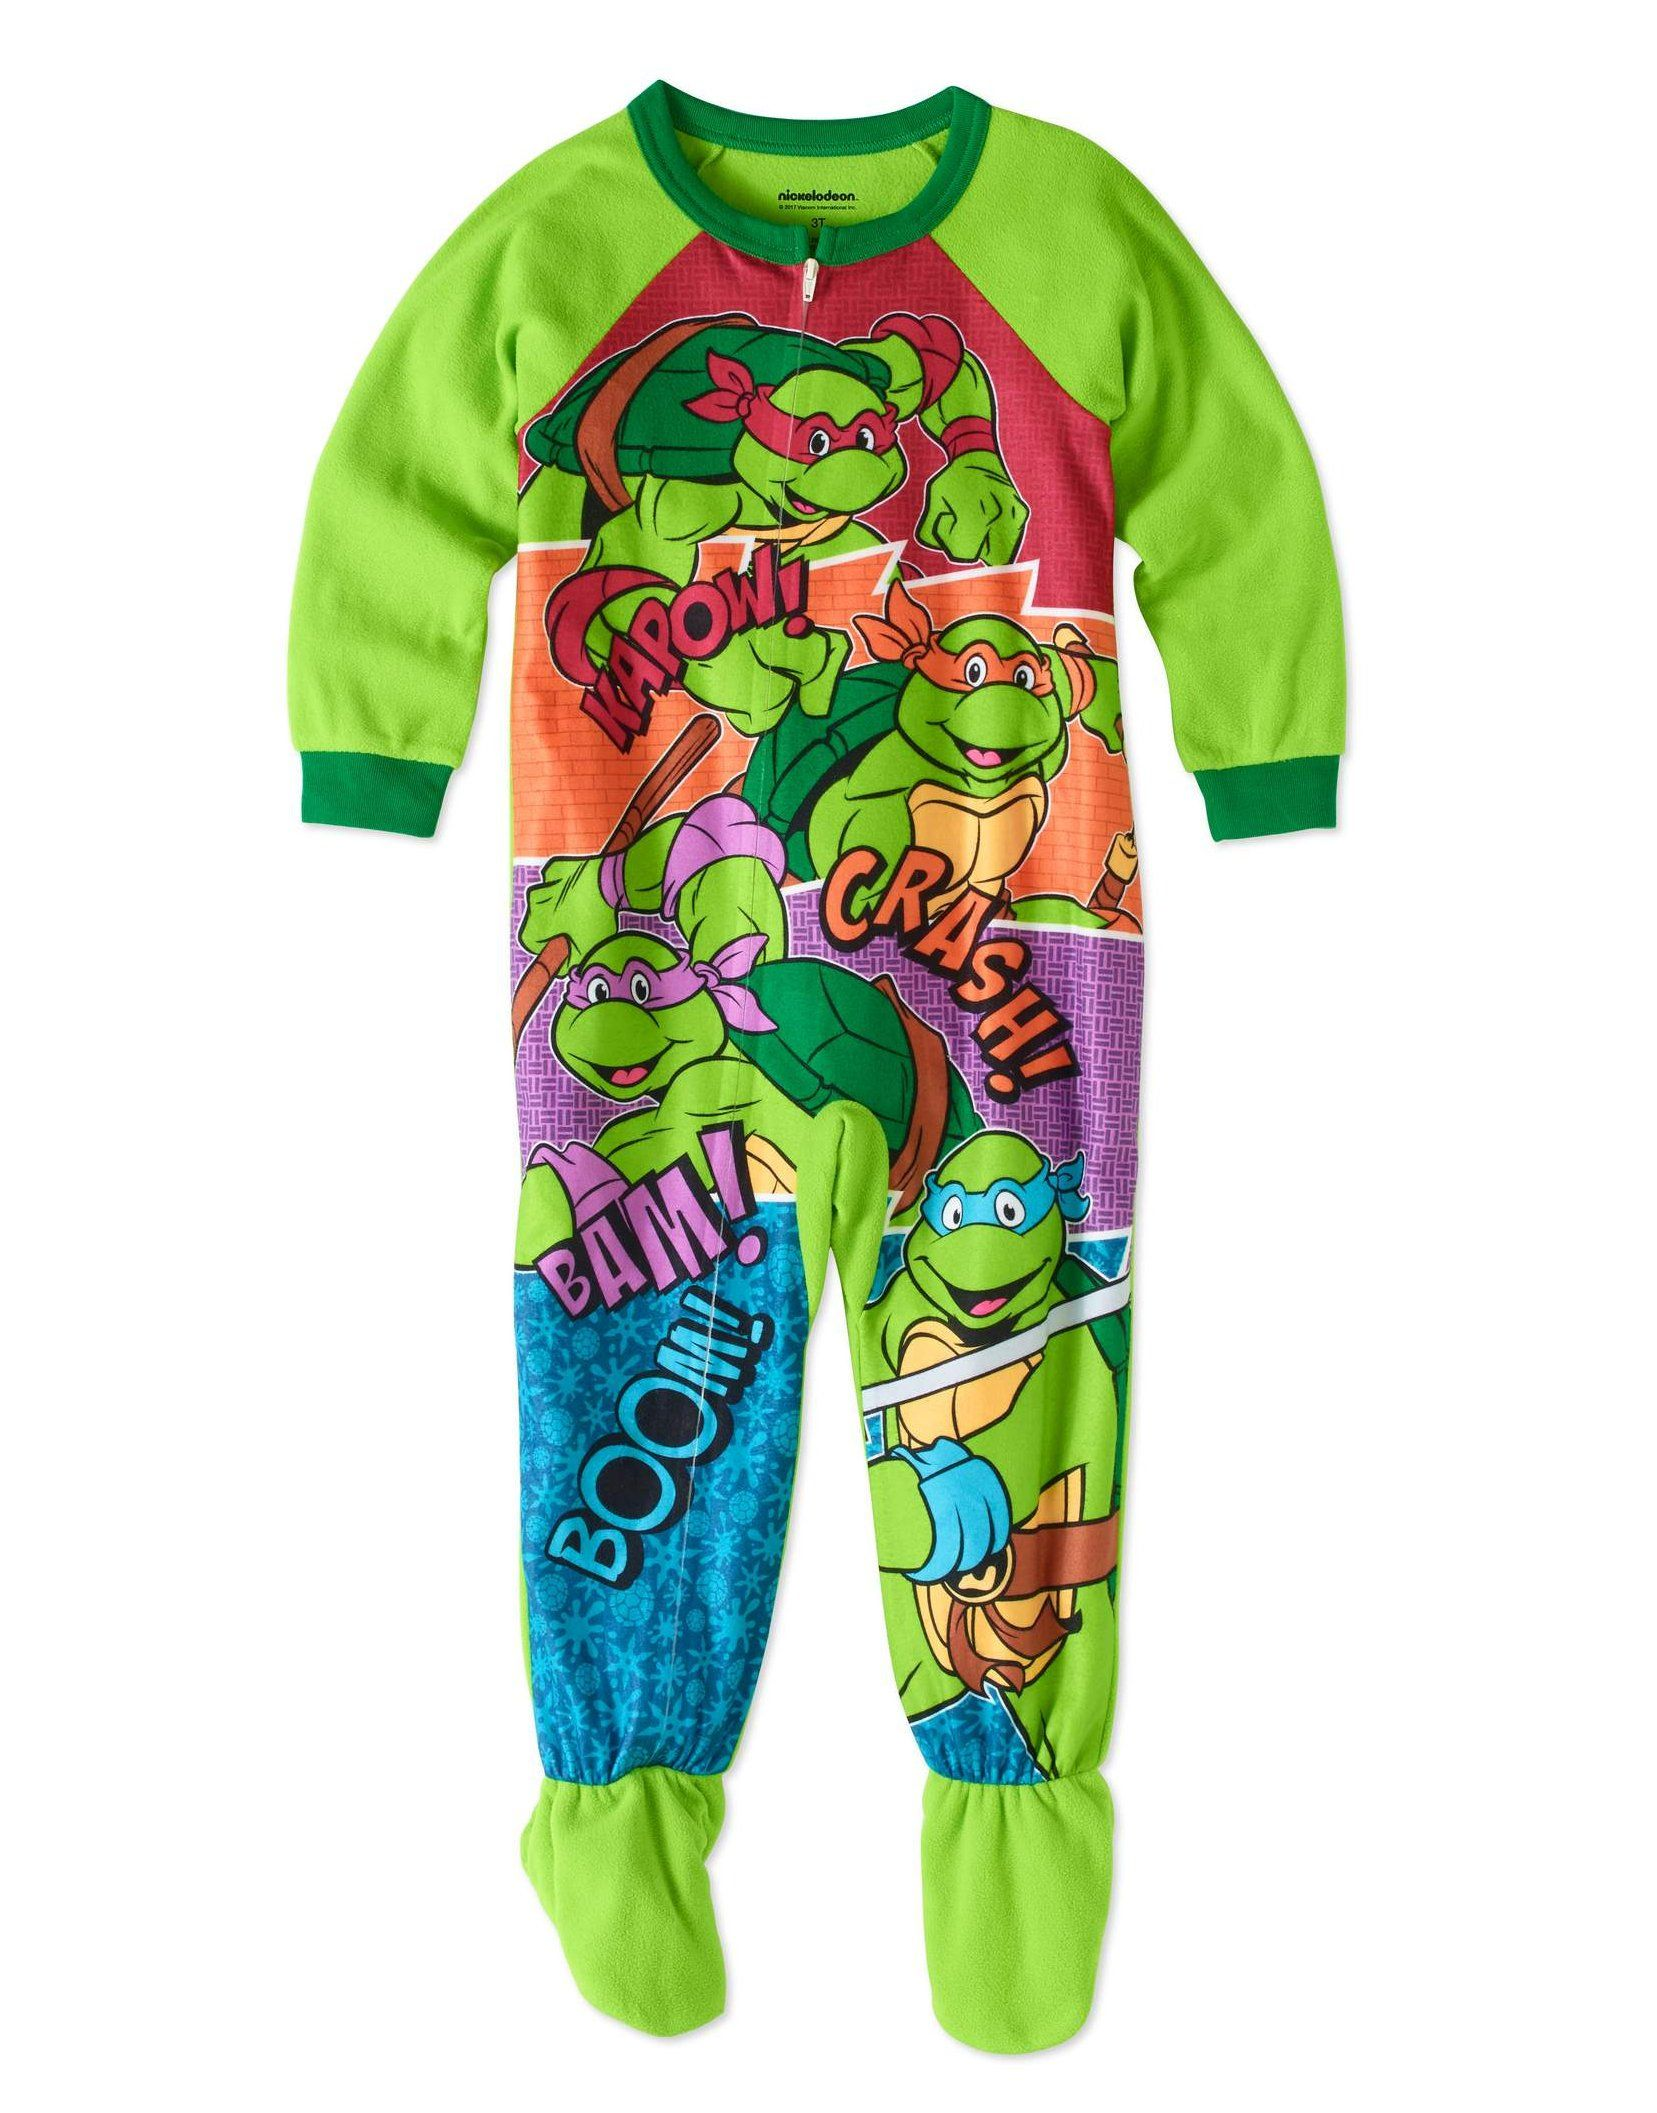 AME Nickelodeon Teenage Mutant Ninja Turtles Toddler Boys 3 Piece Pajama Set